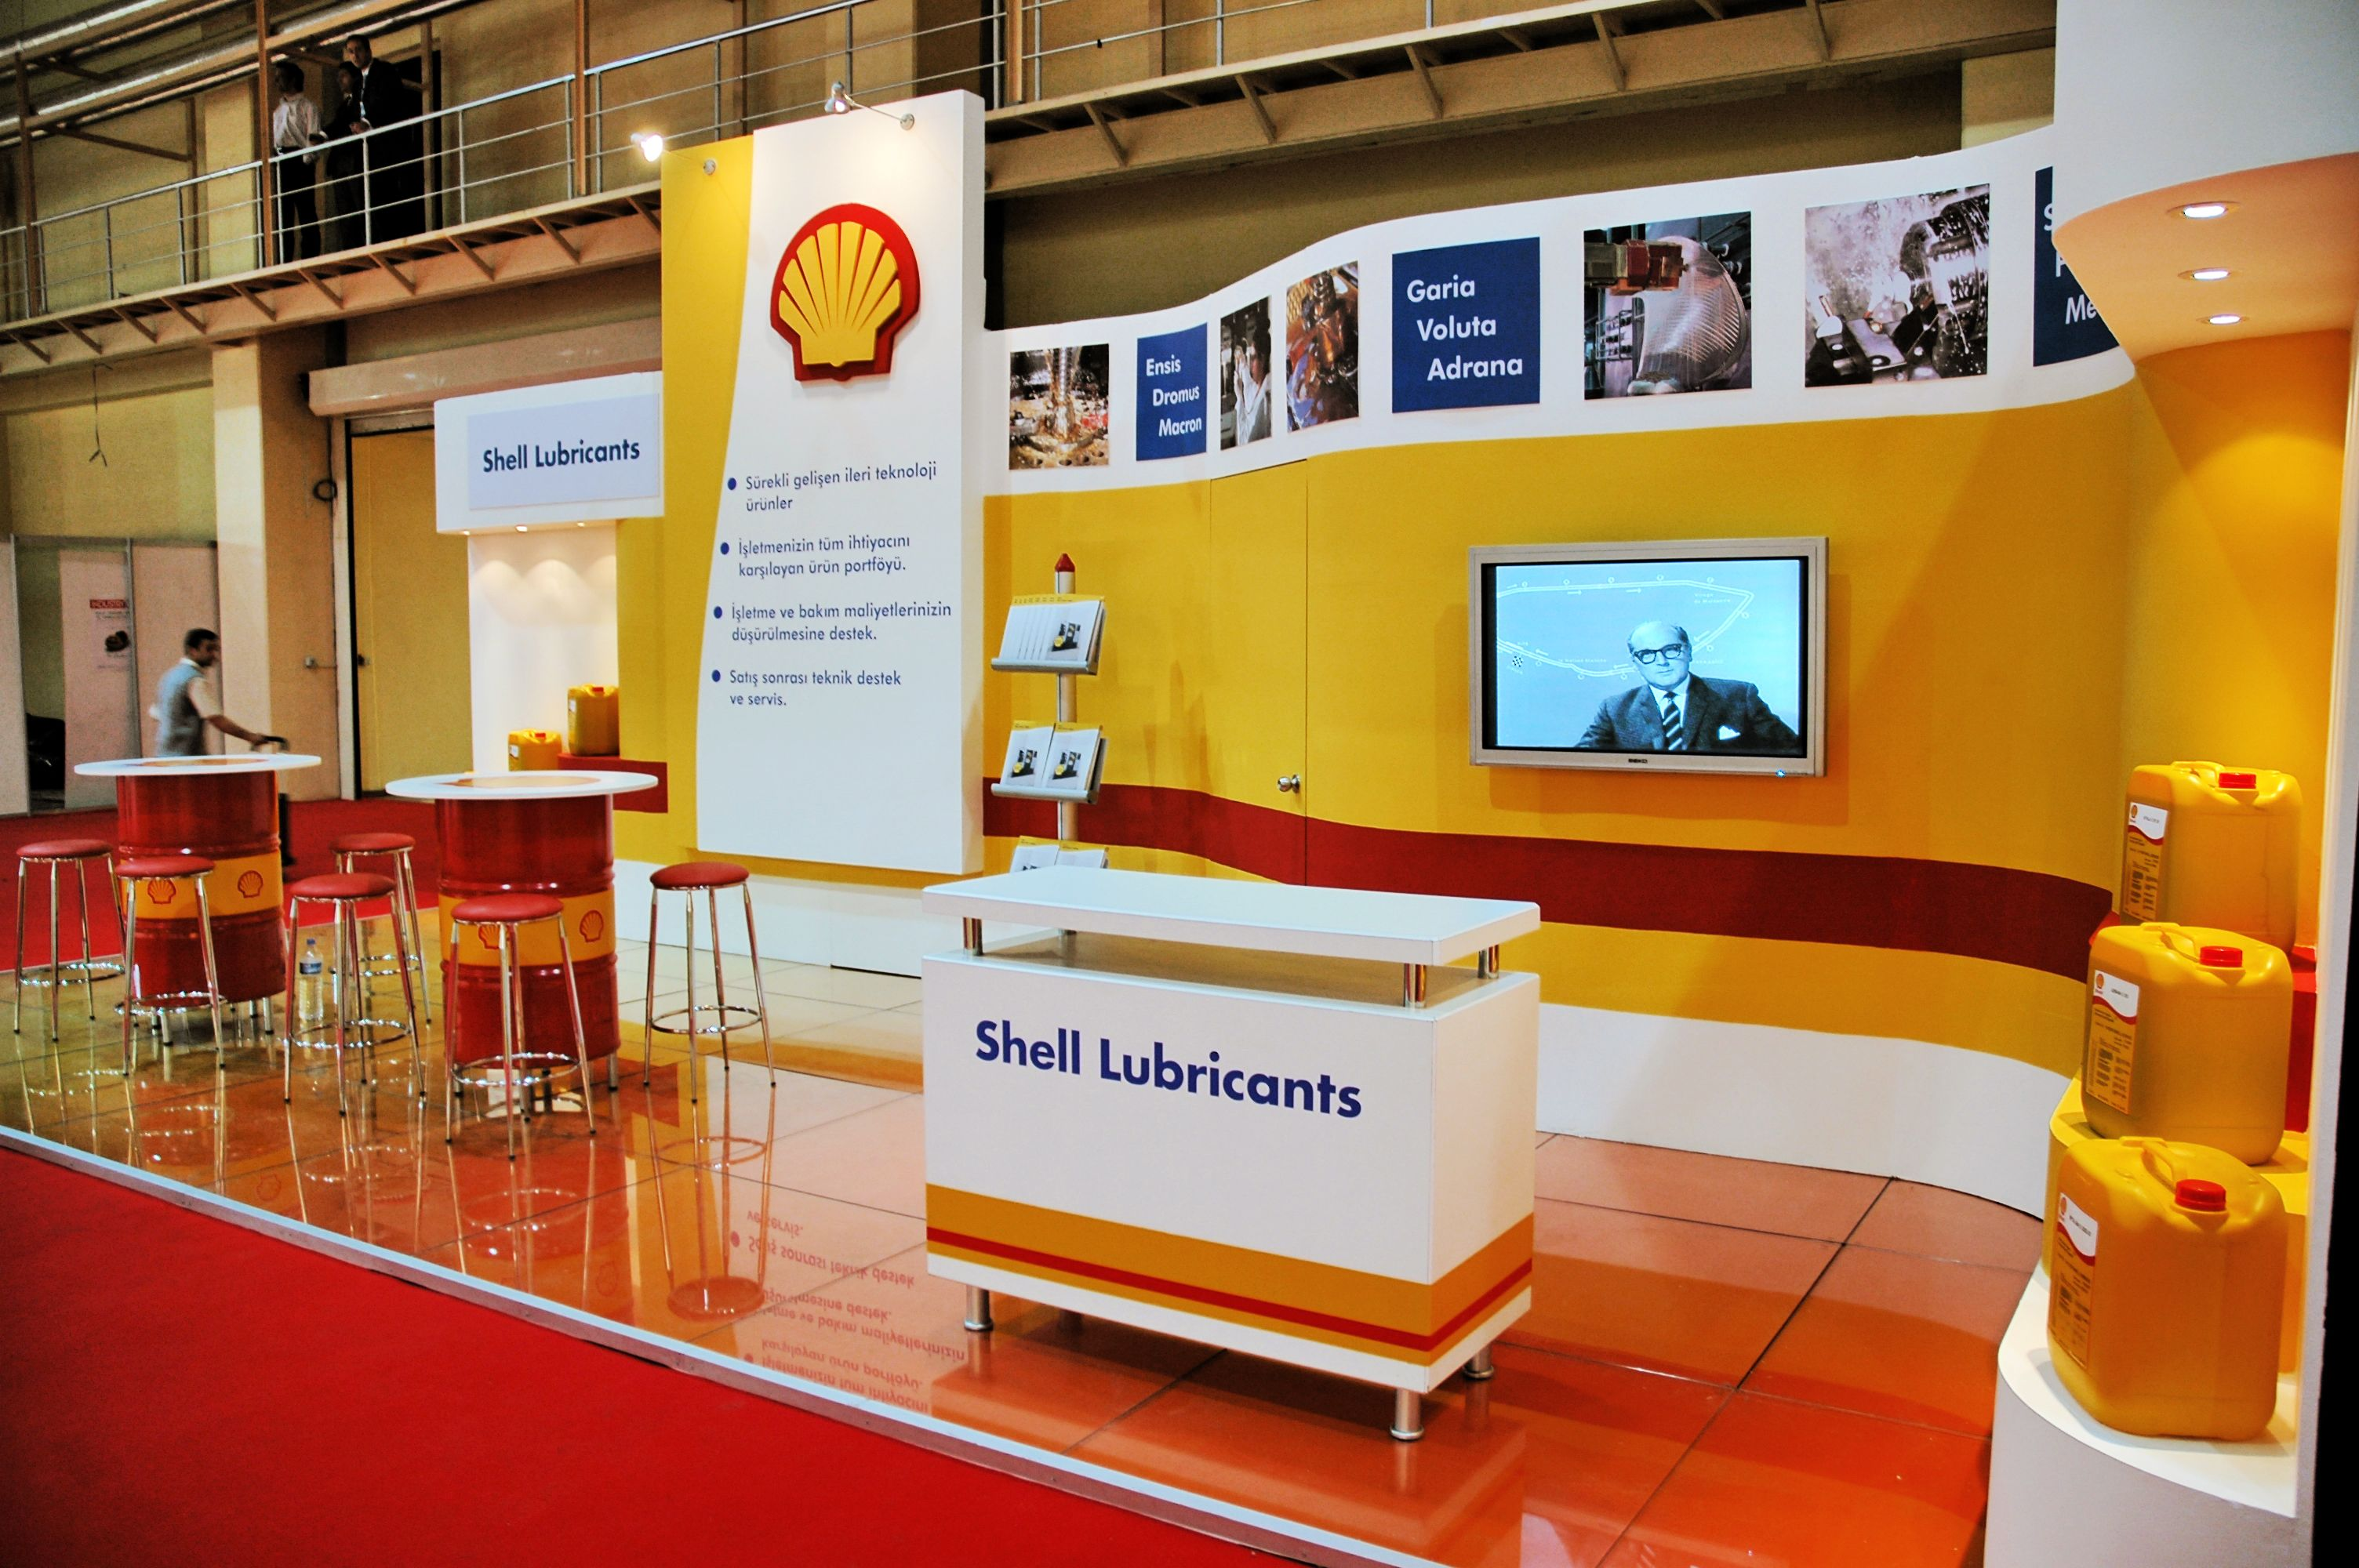 Shell Exhibition Kirkcaldy : Quot shell exhibition stand ugur erekul works pinterest